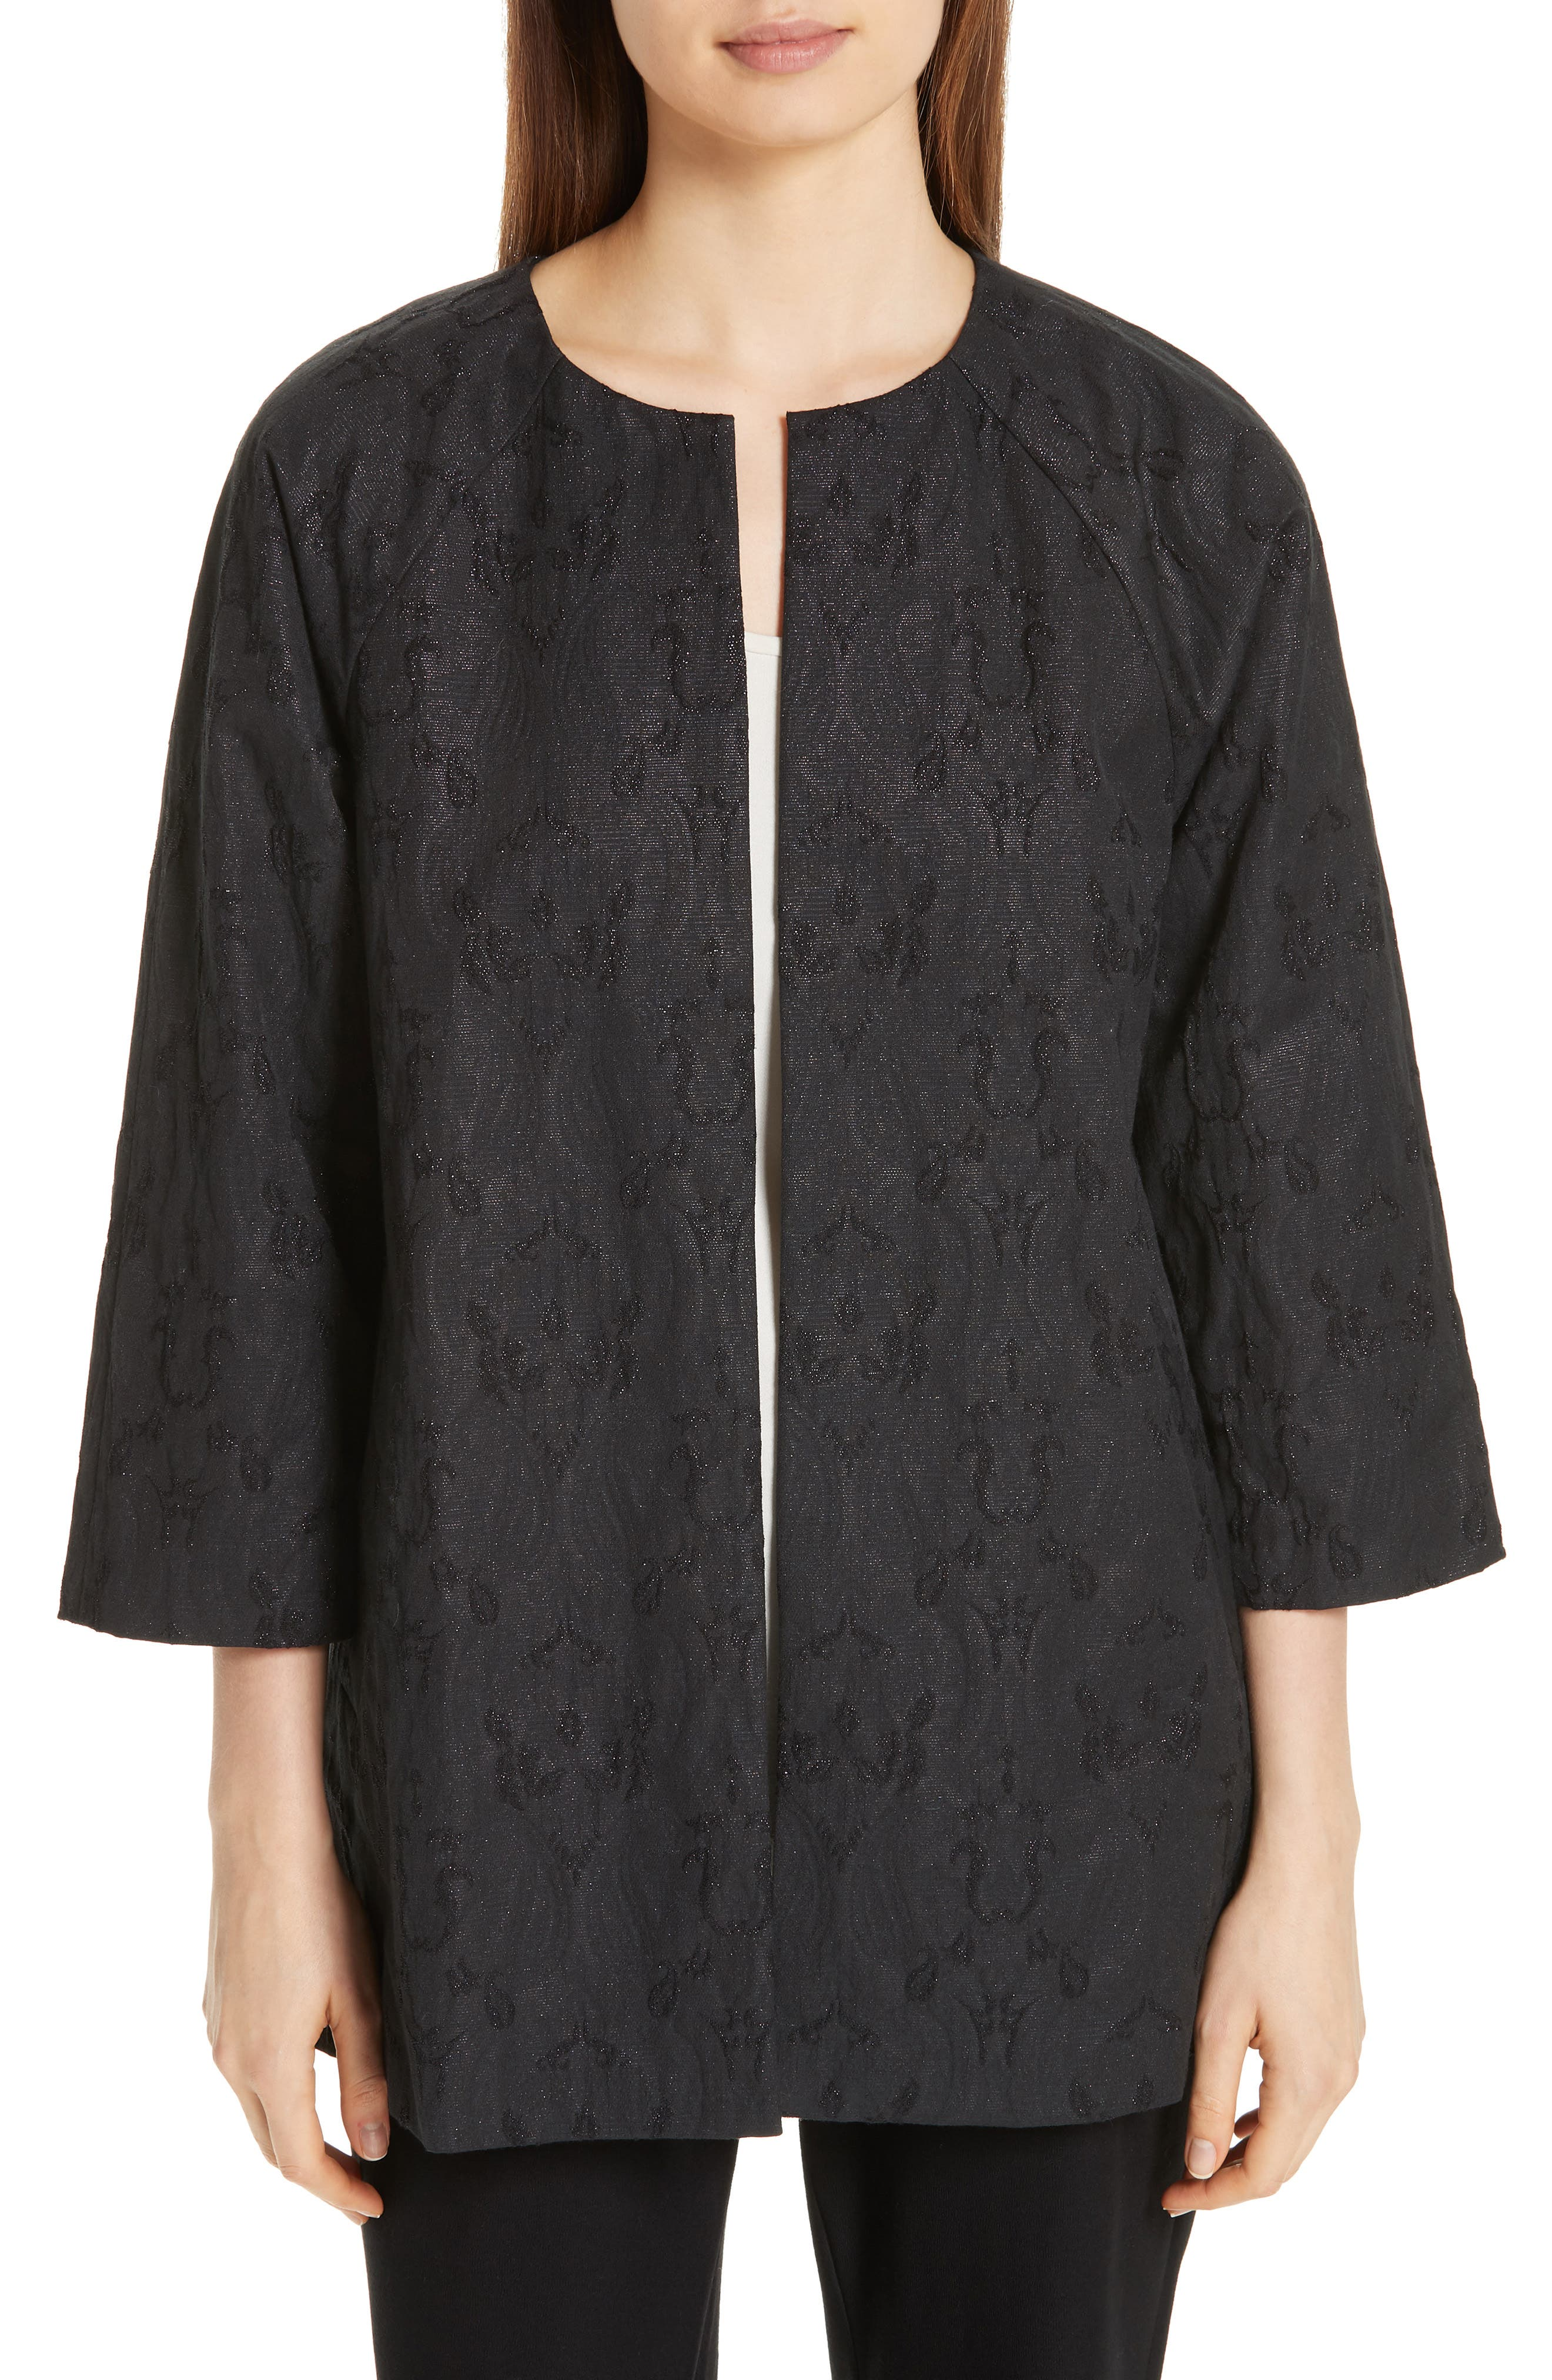 EILEEN FISHER, Metallic Jacquard Collarless Jacket, Main thumbnail 1, color, BLACK